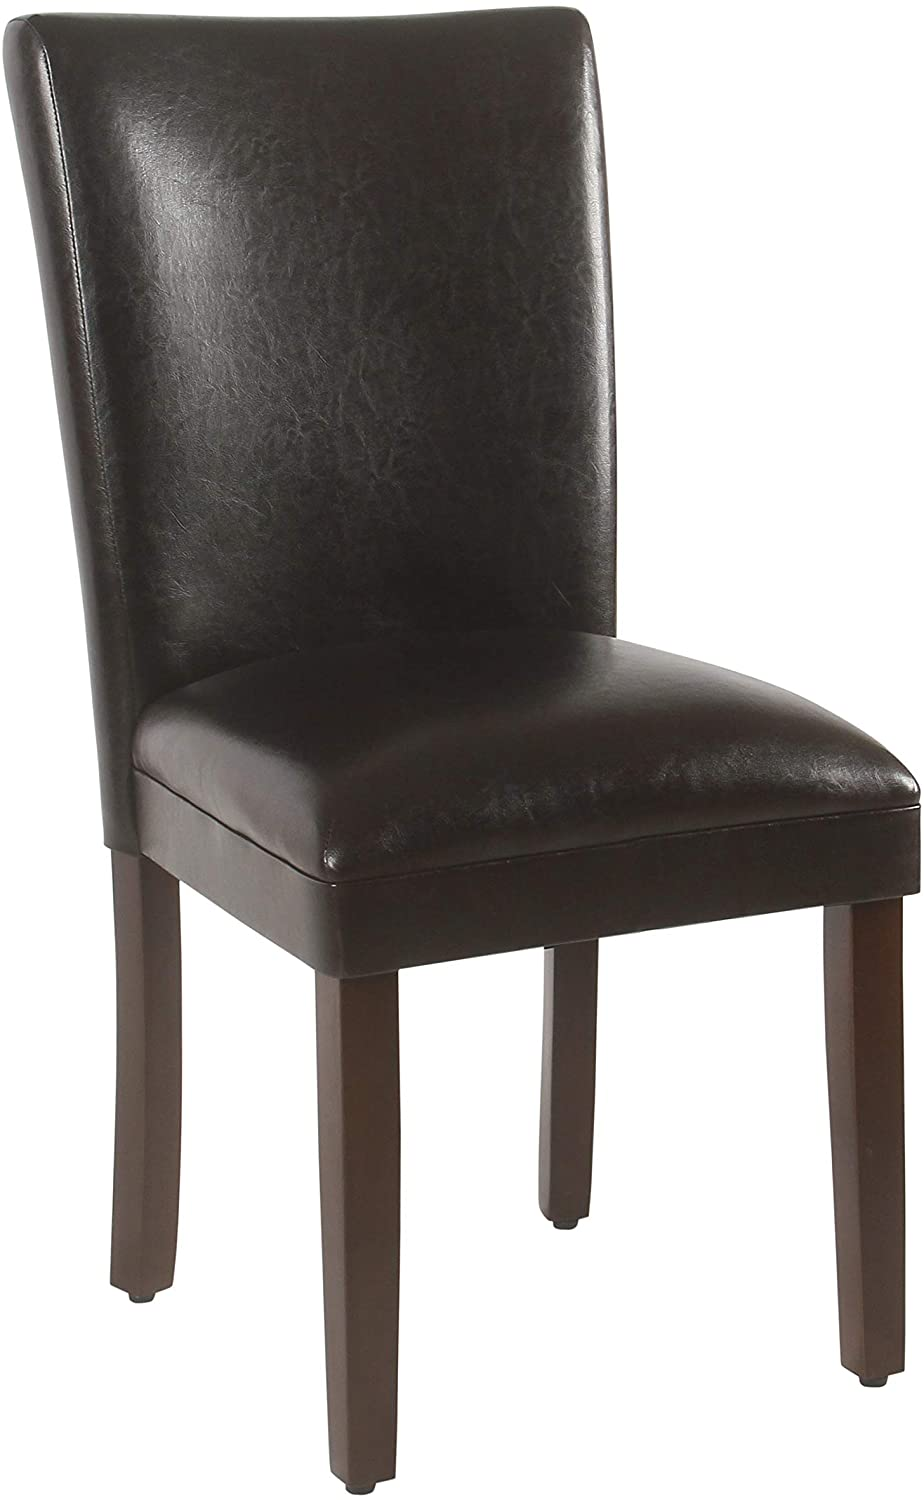 Limited price sale HomePop Long Beach Mall Parsons Upholstered Accent Dining Chair Set of Dark 2